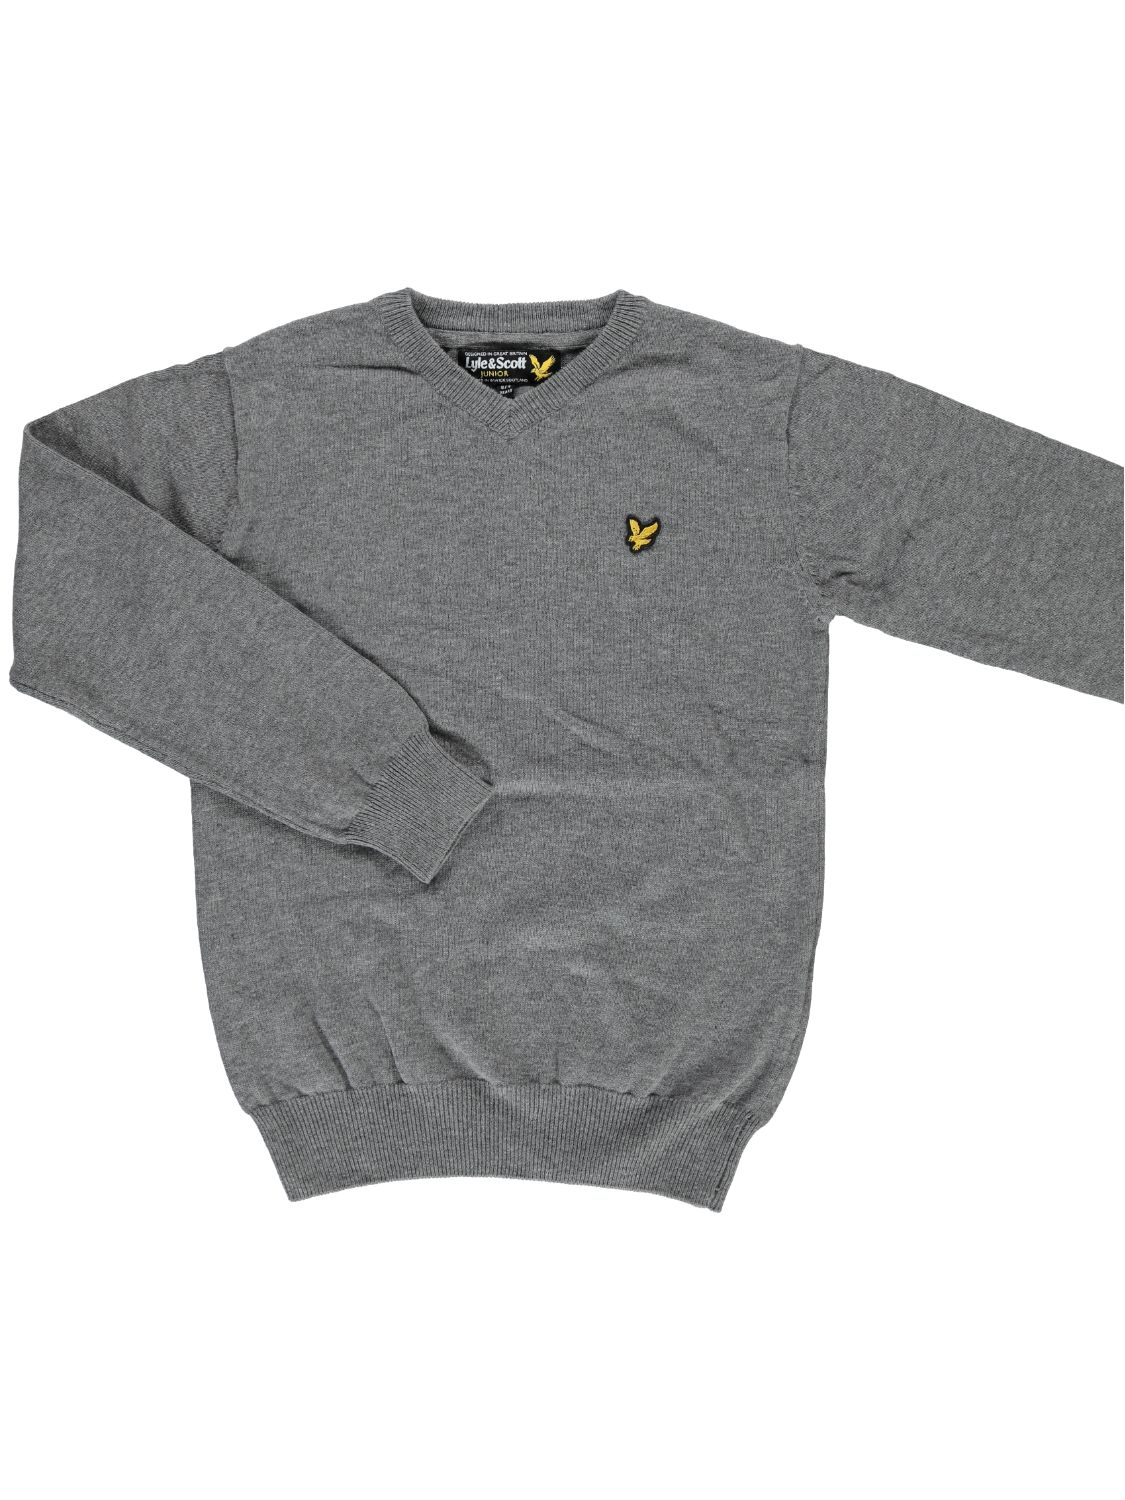 Lyle Scott Sweater